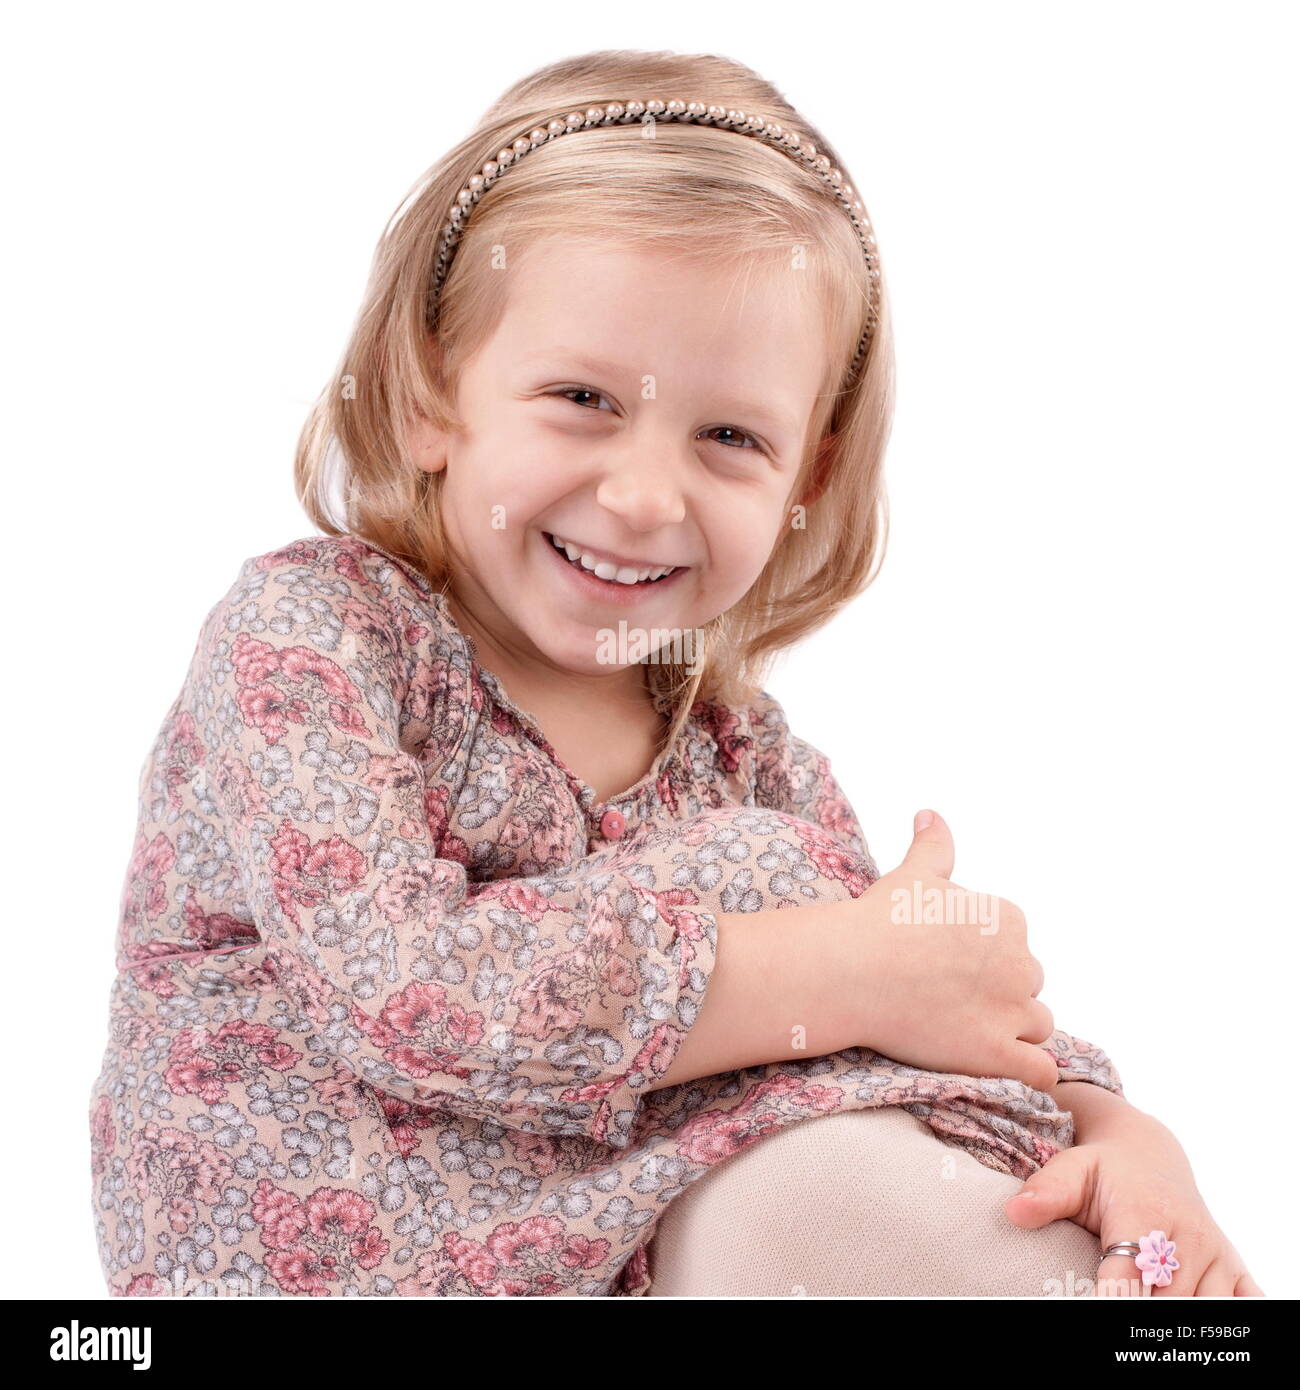 Cute little girl dressed in floral, dress having fun - Stock Image